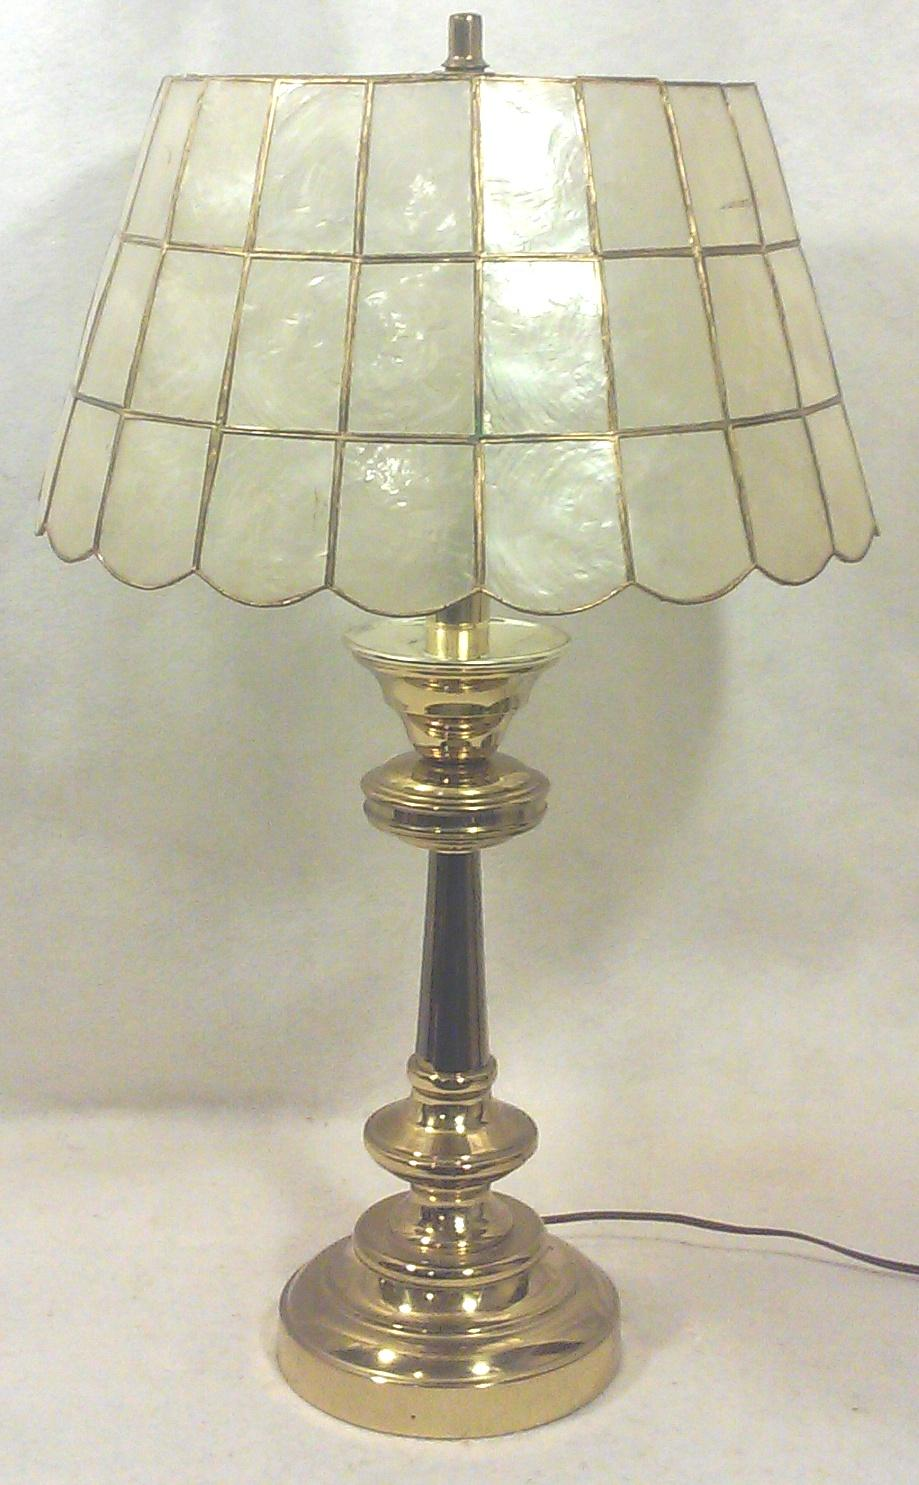 Brass Table Lamp With Capiz Shell Shade   Image 5 Of 5